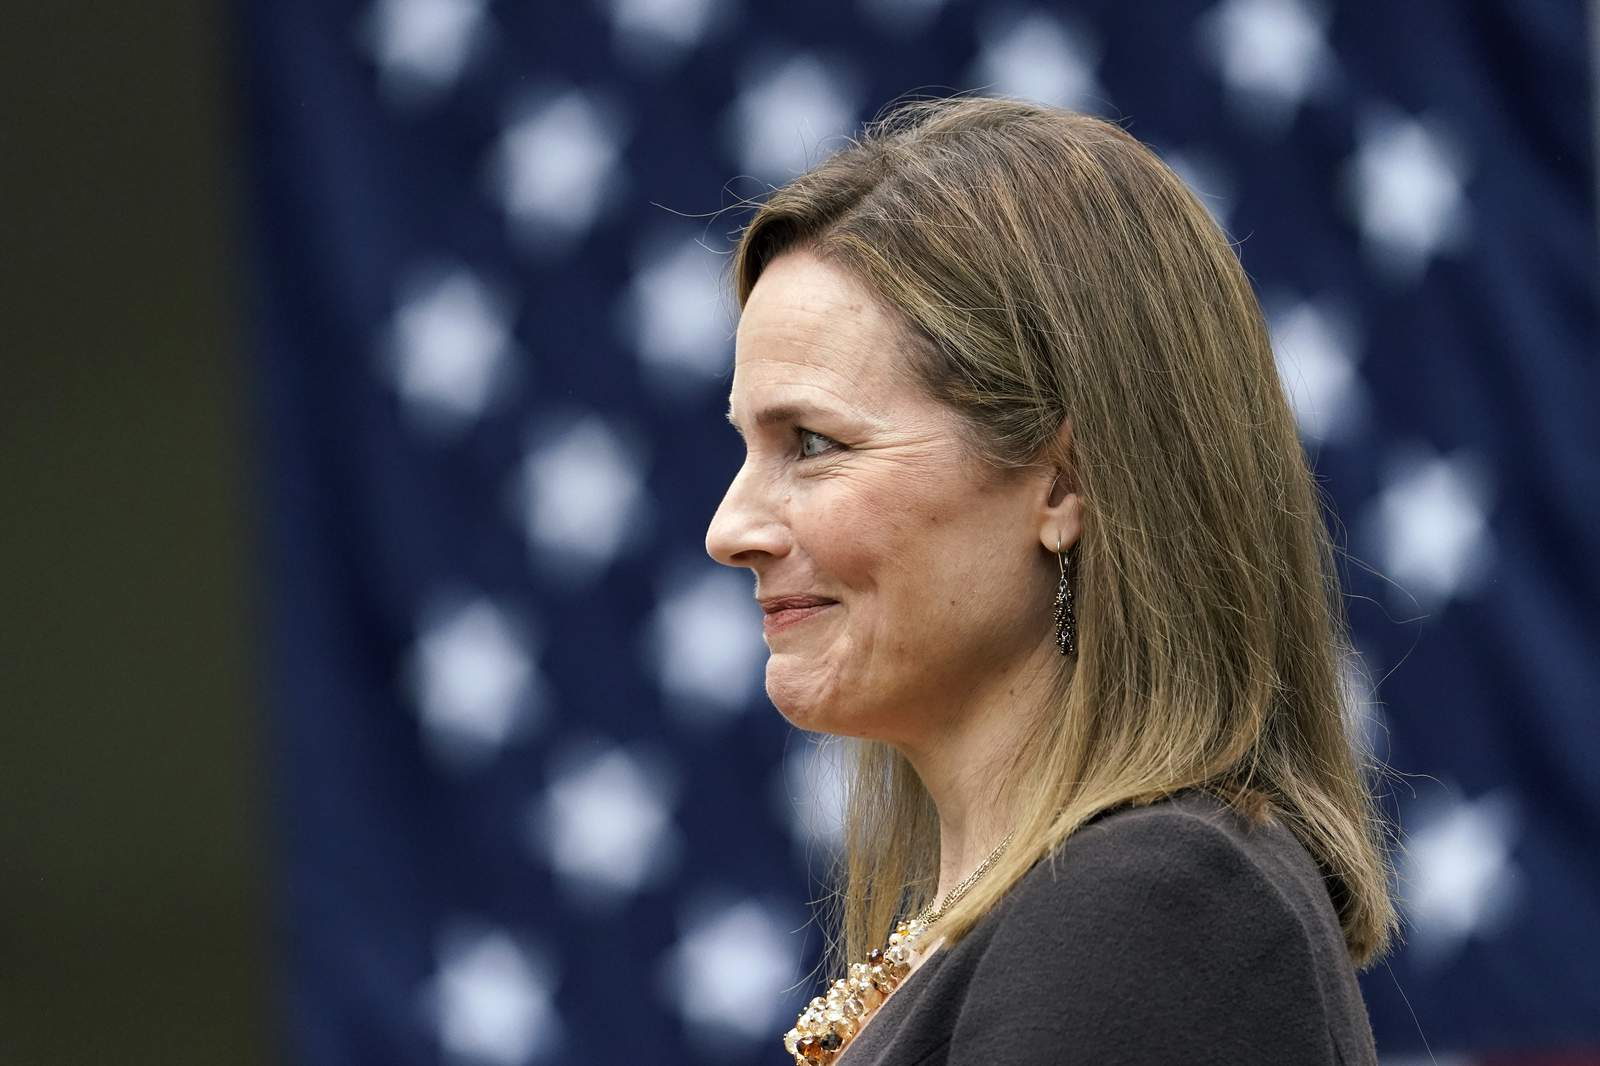 7th U.S. Circuit Court of Appeal: Amy Coney Barrett on faith, precedent, abortion...